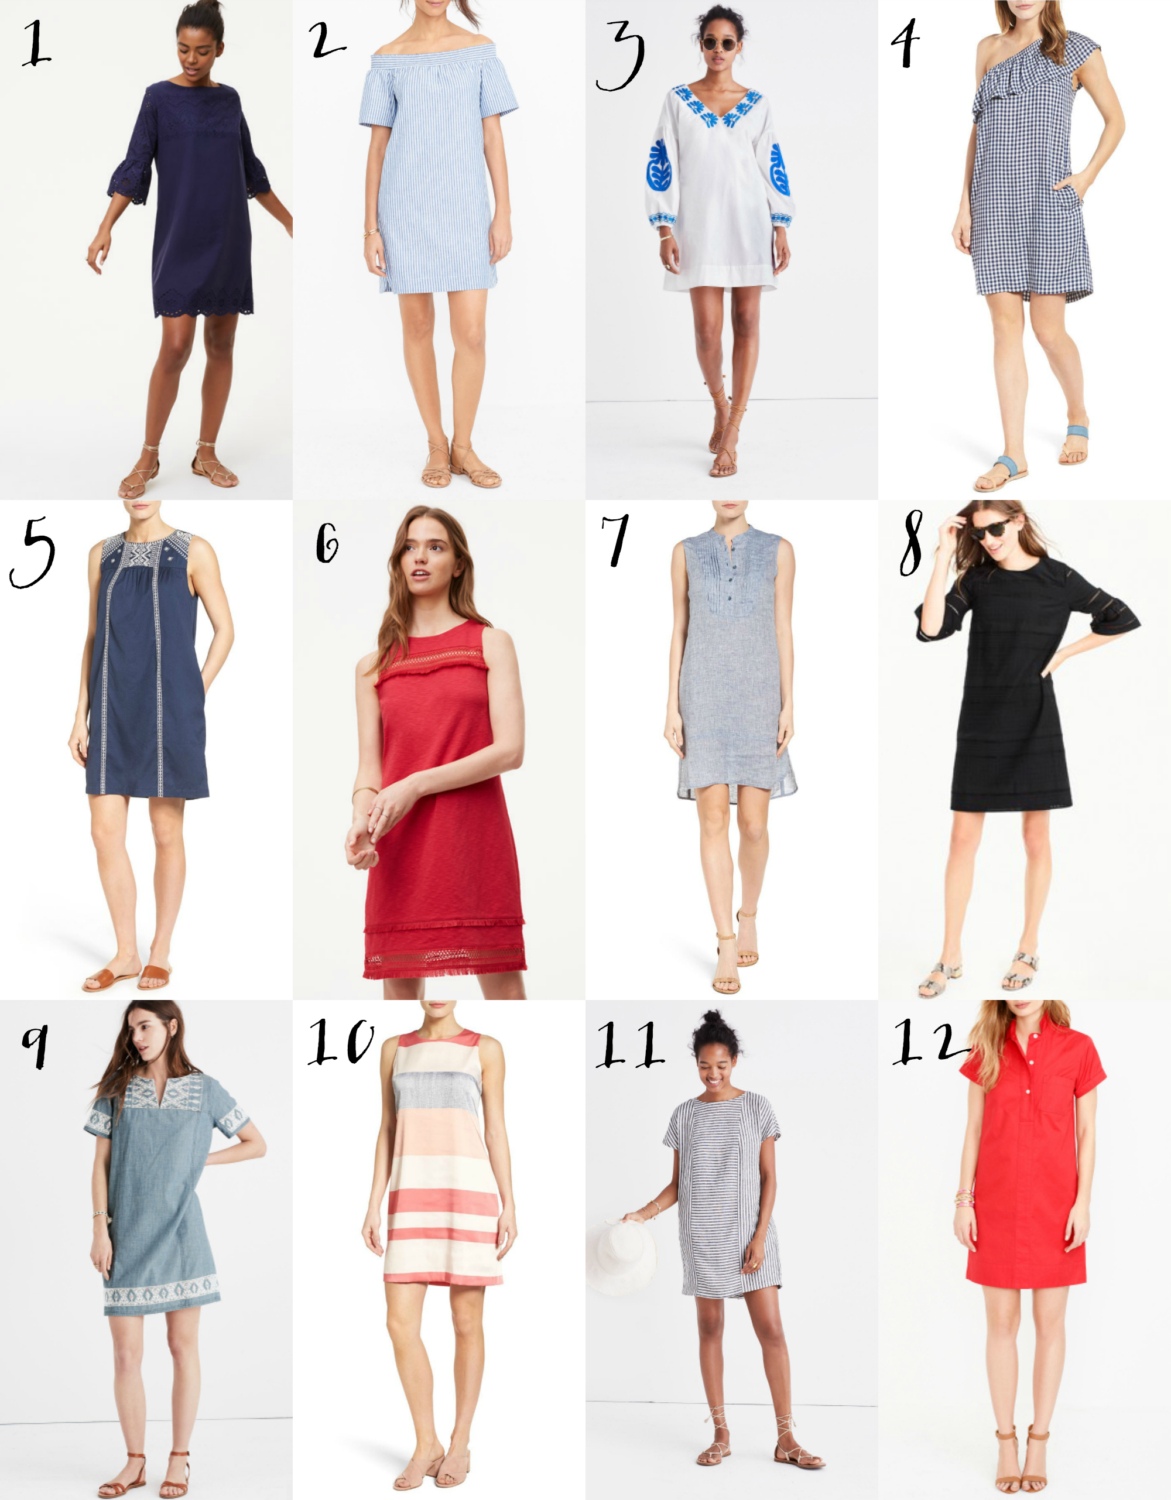 A collection of the season's best shift dresses - perfect for summer days or if you've been wondering what to wear for Mother's Day!